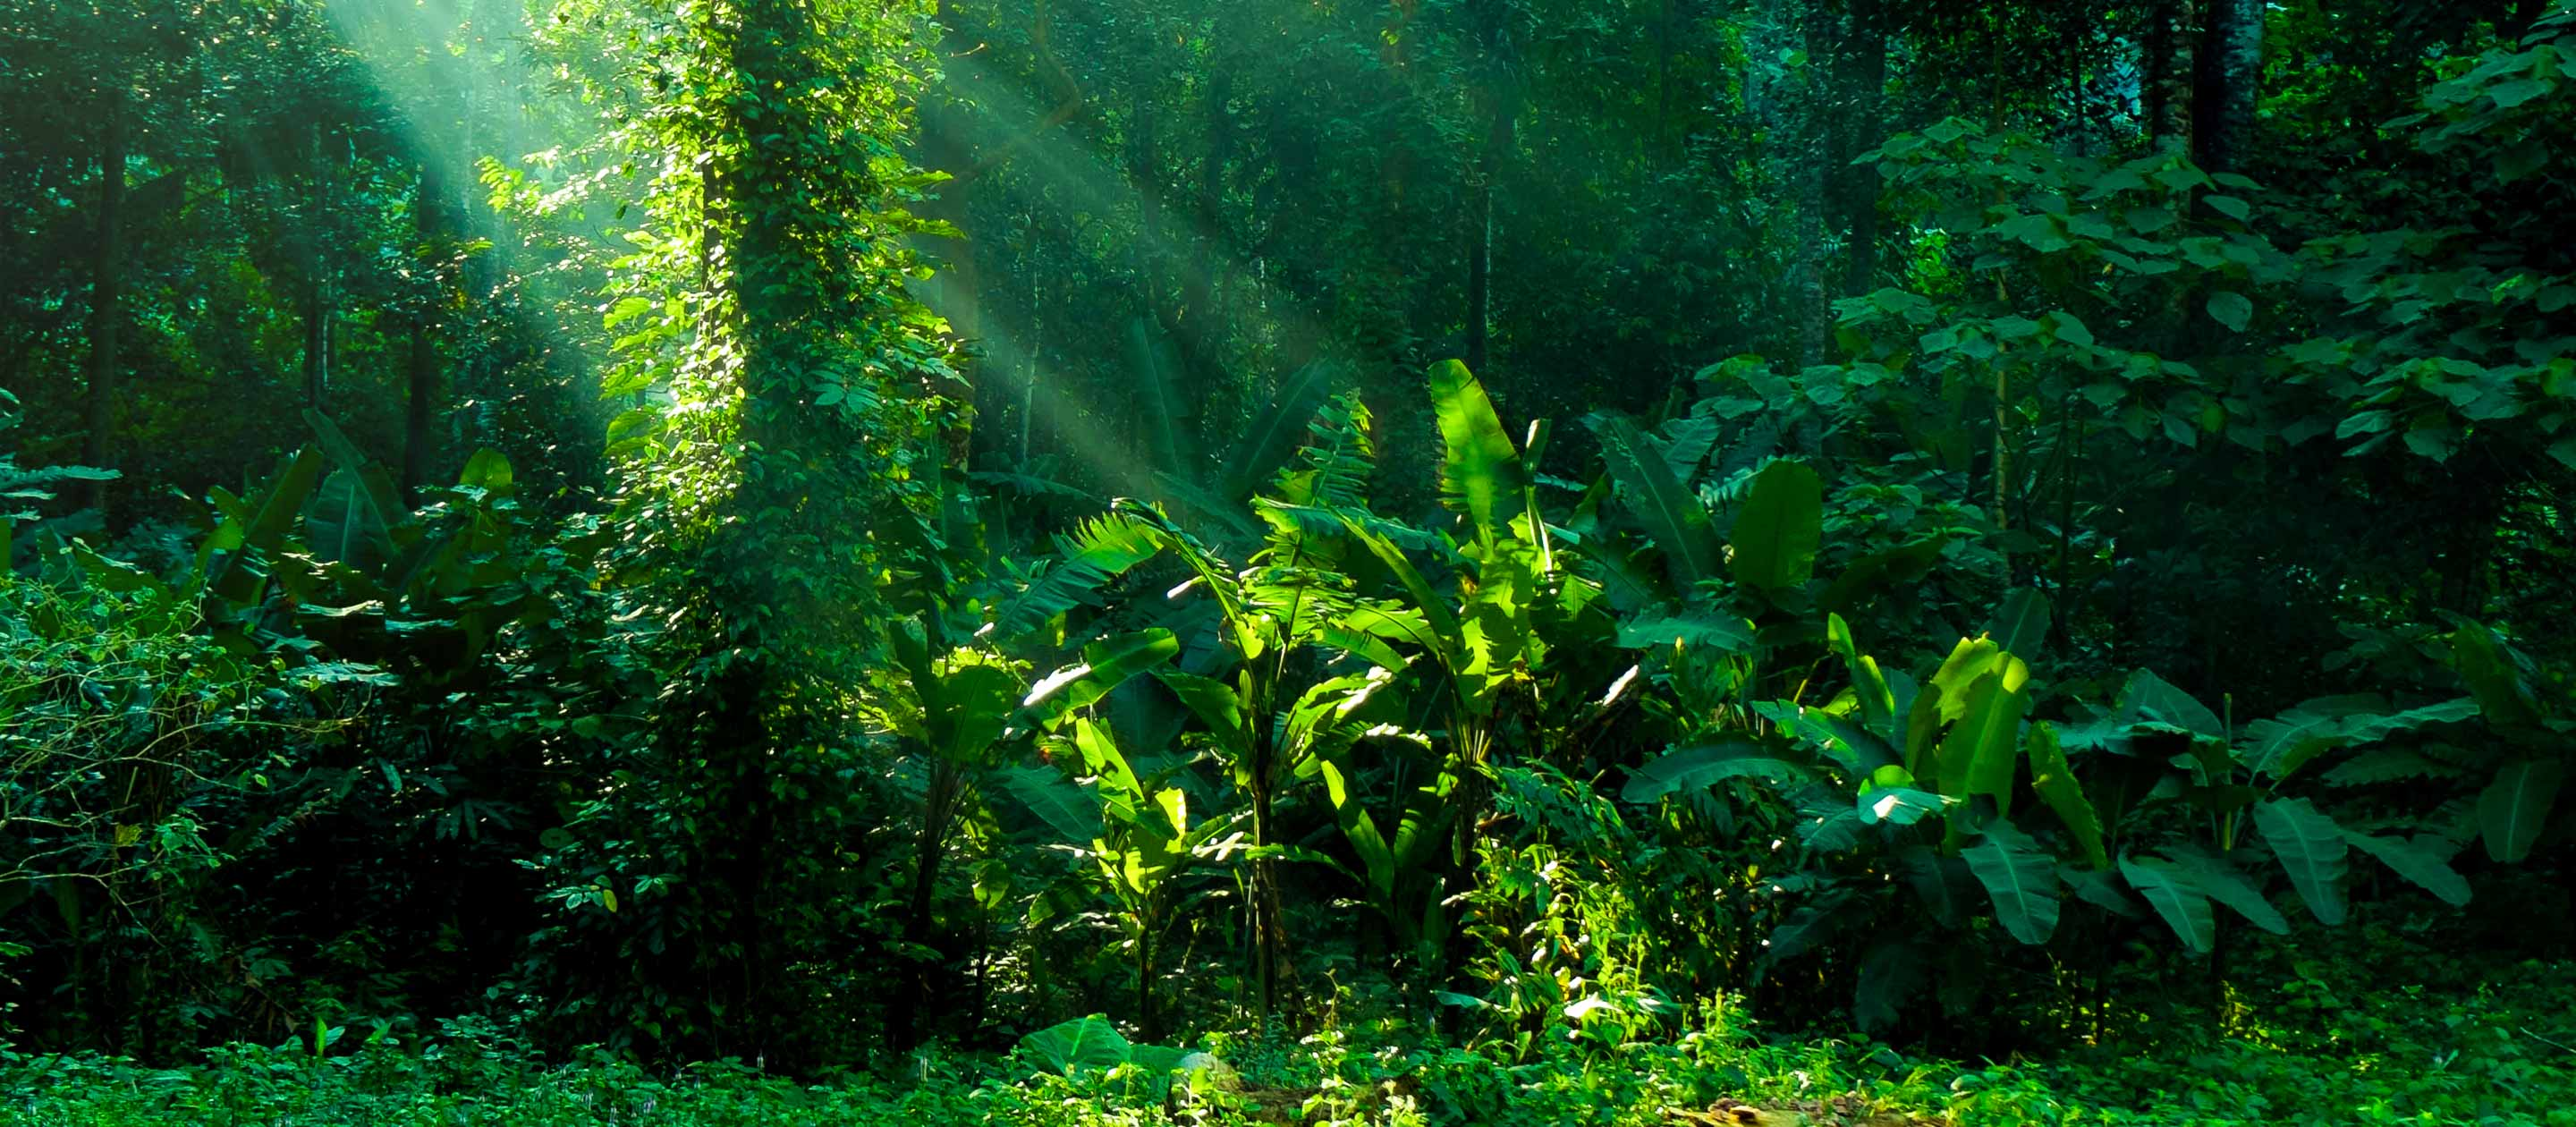 Greenery of the Amazon rainforest